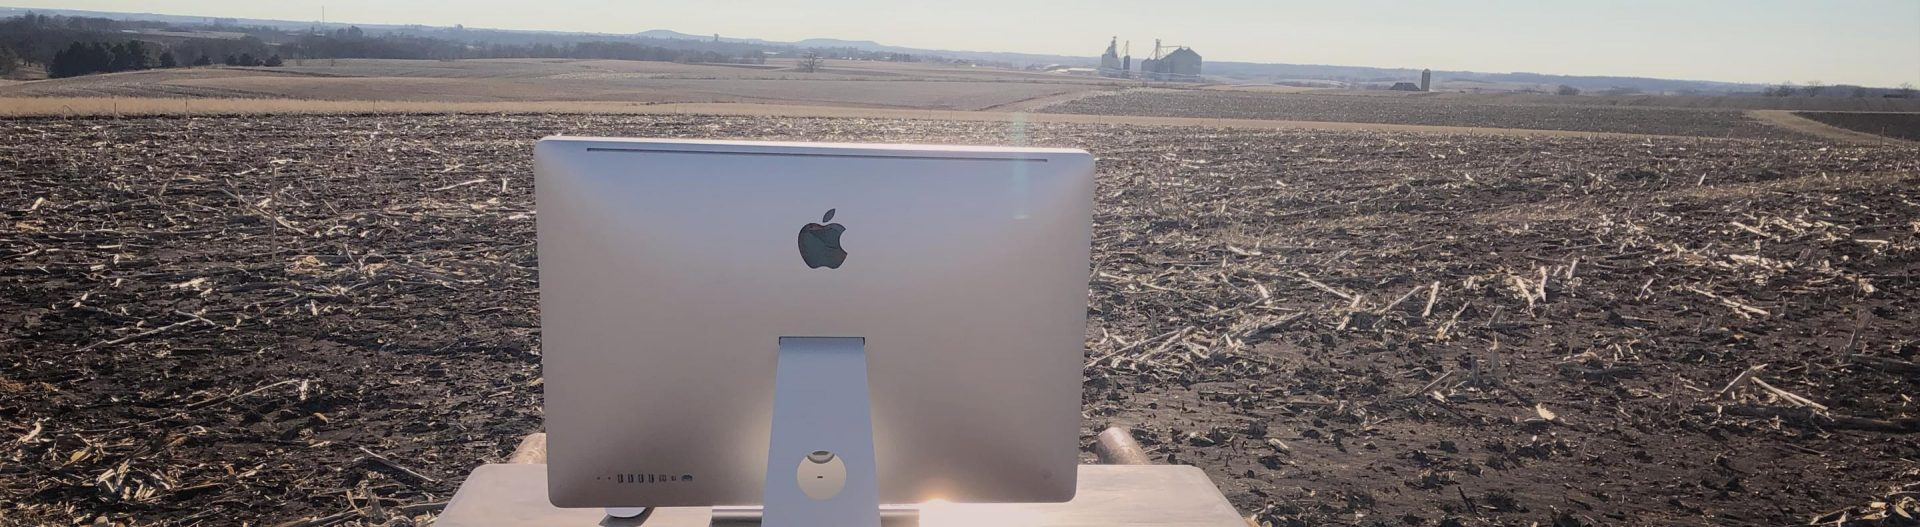 Computer in field